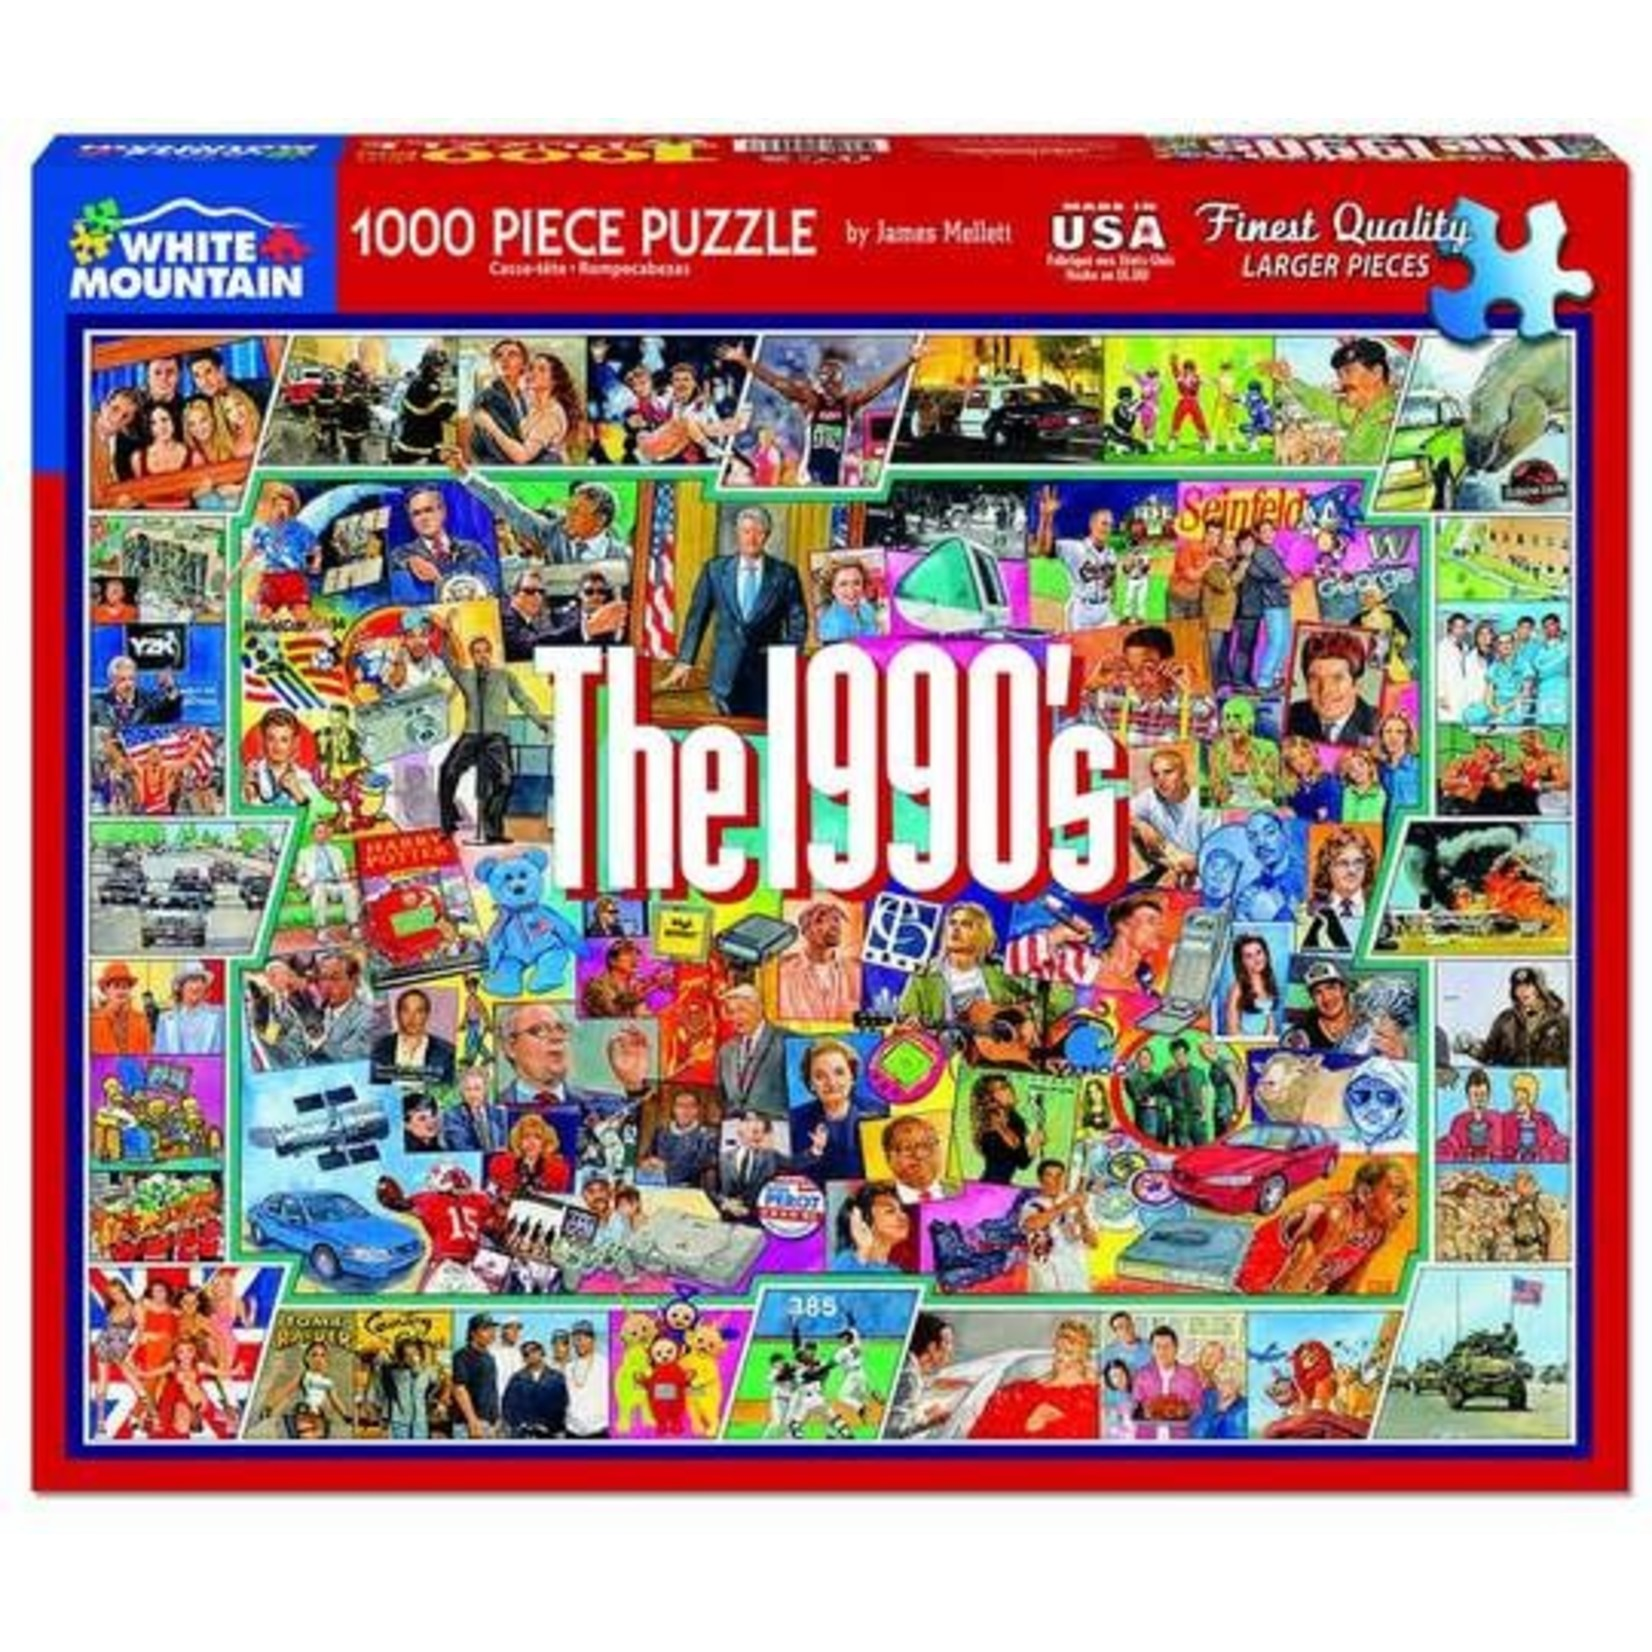 THE 1990'S PUZZLE